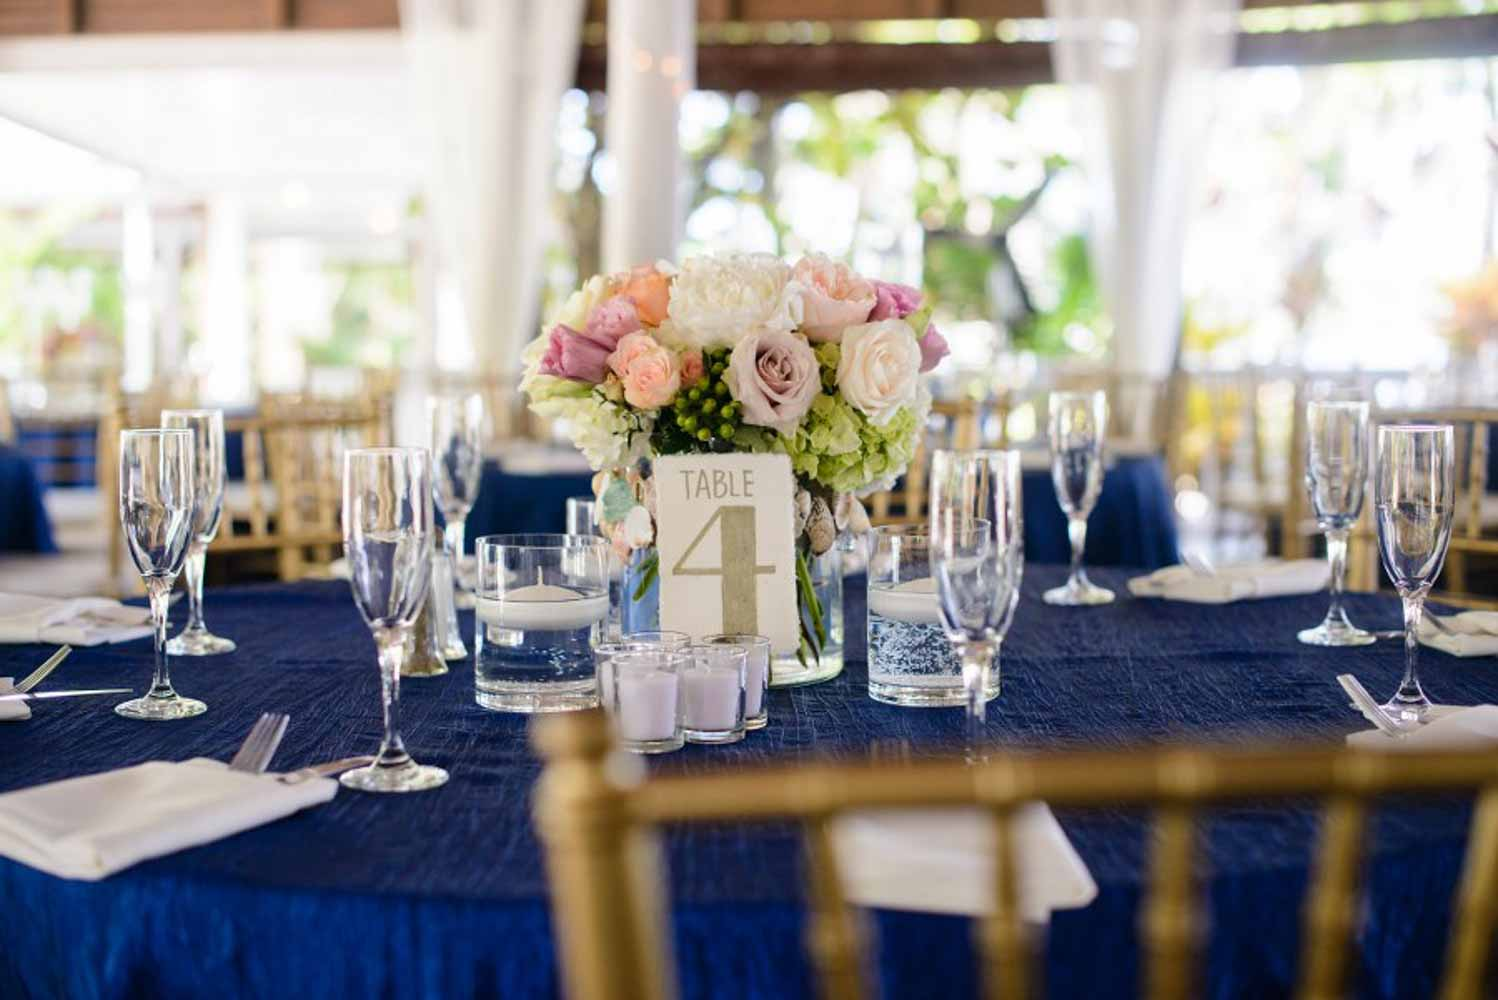 blush and white wedding centerpiece on reception table with navy tablecloth